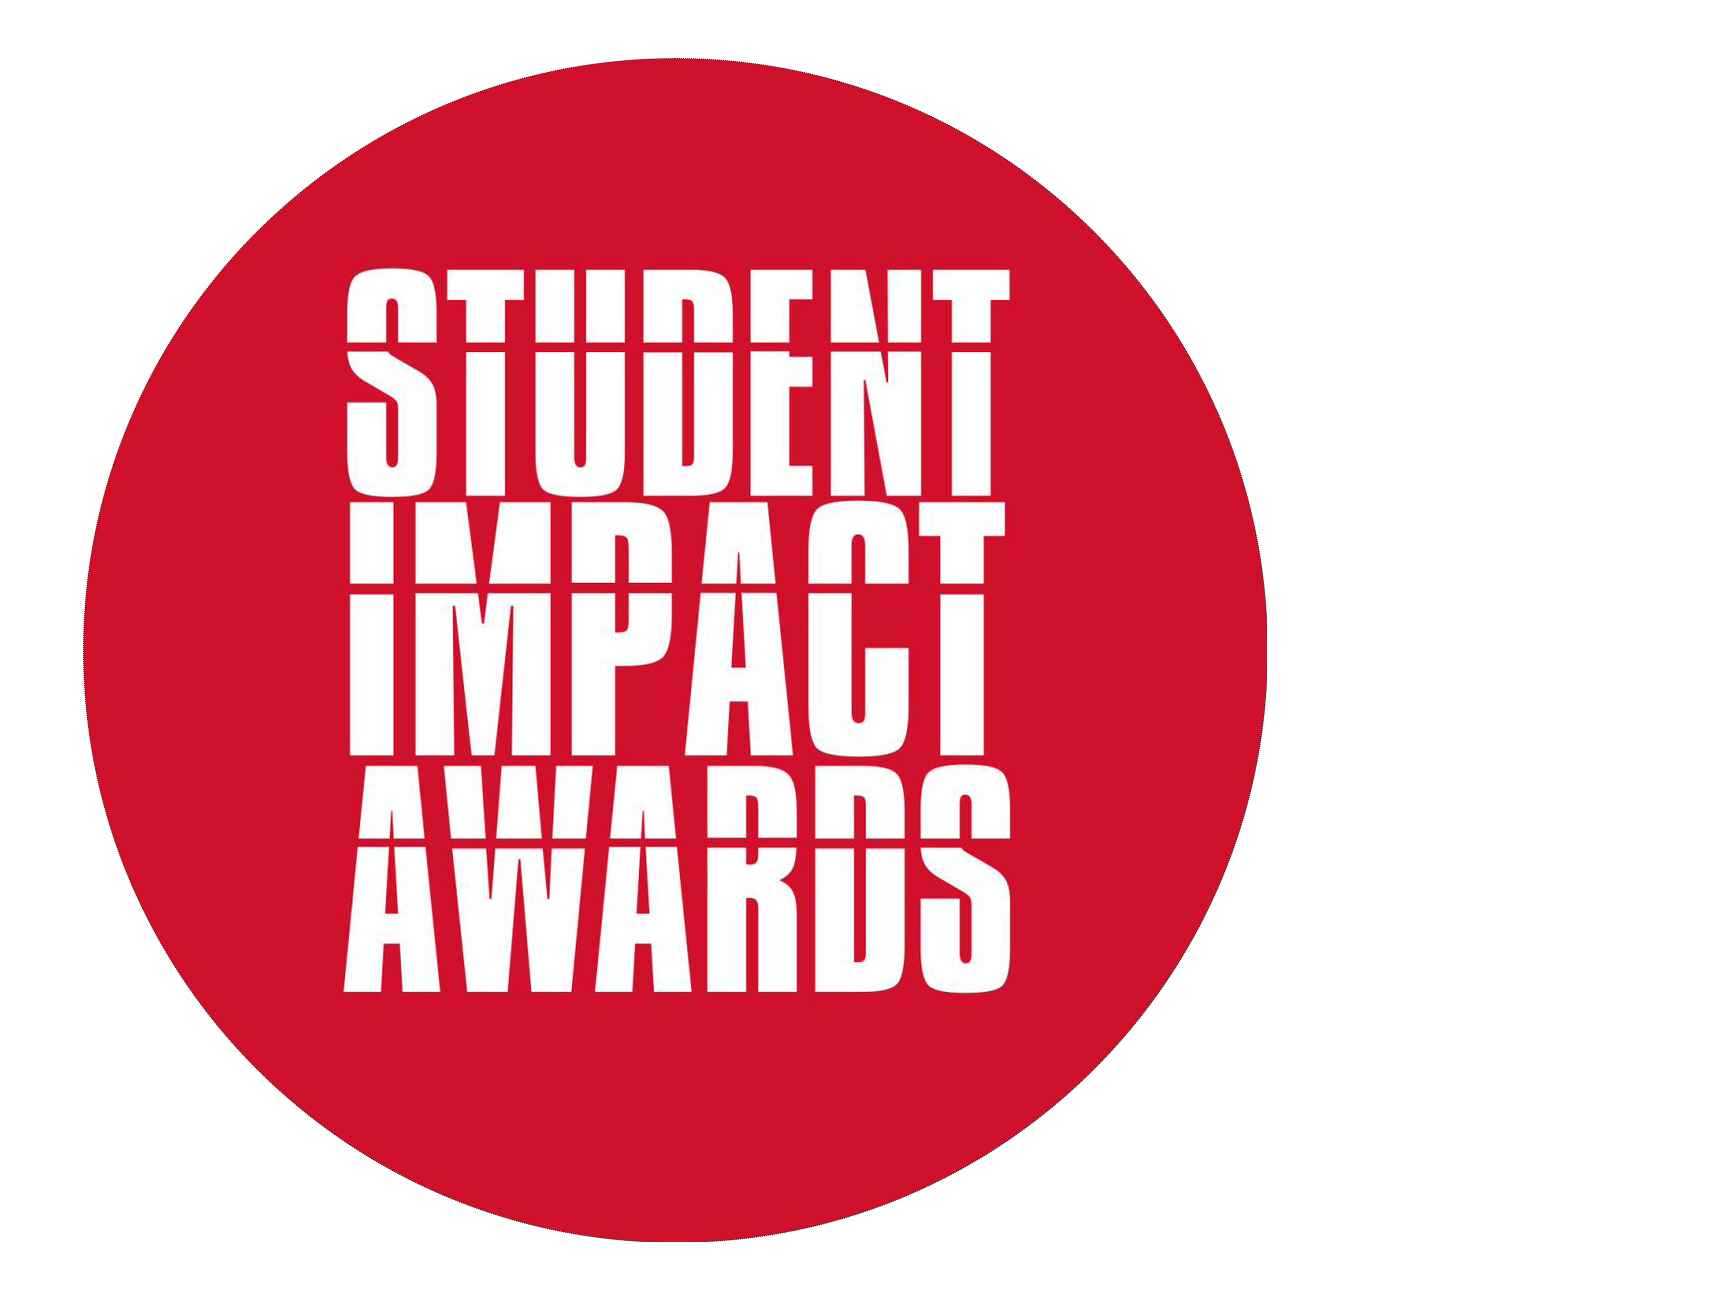 Stuent Impact Award winners for 2020-21 will announced at a ceremony on April 15.